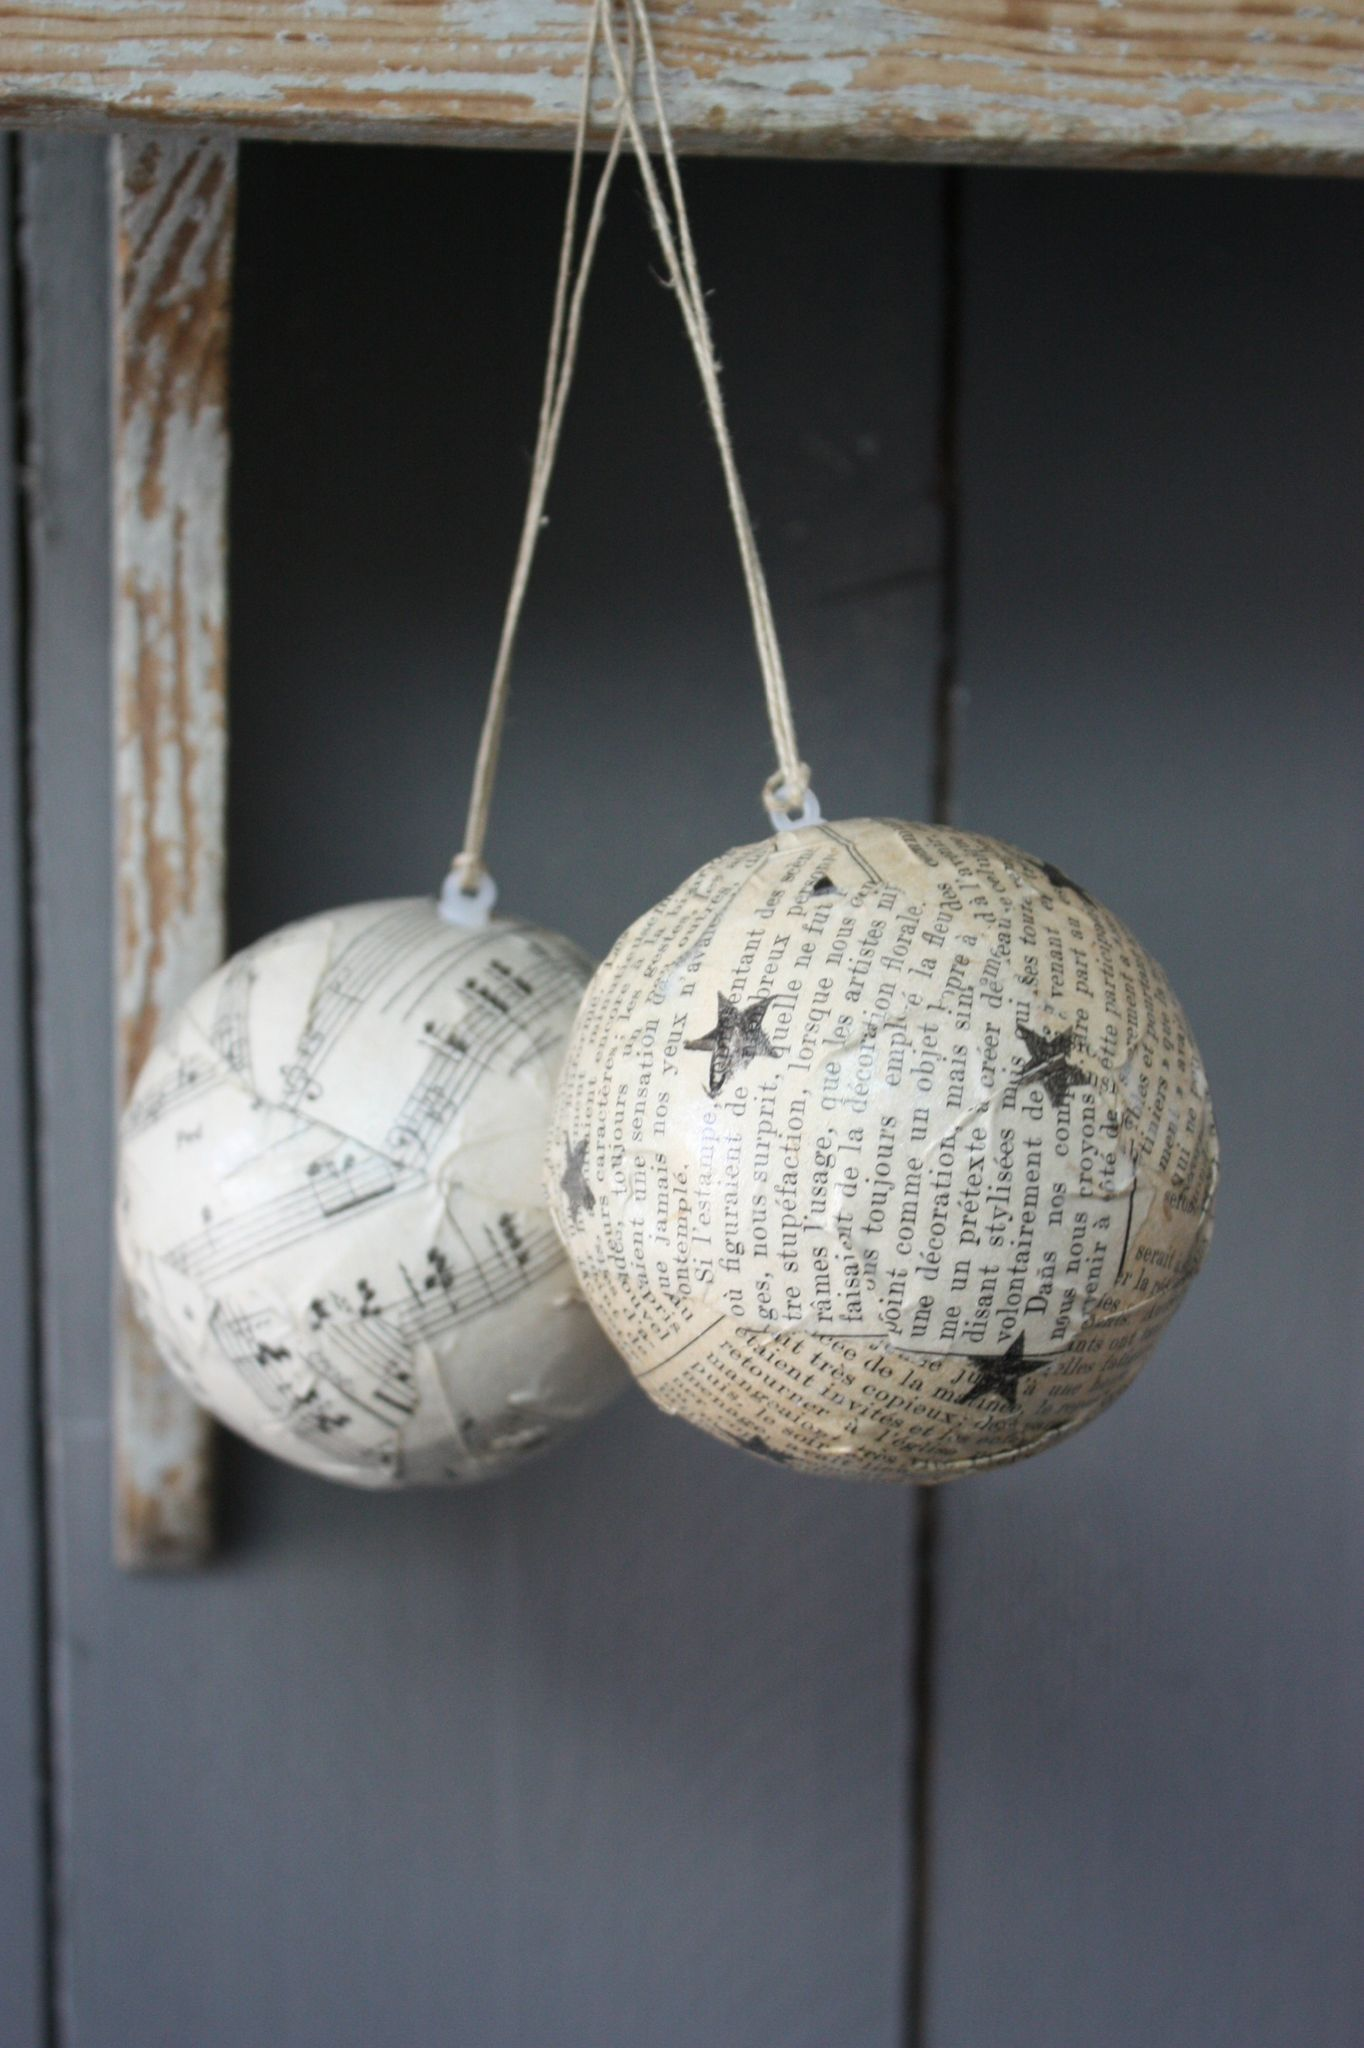 Sheet music christmas ornaments - Diy Christmas Ornaments Like The Idea Of Using Old Music Sheets And Mod Podge To